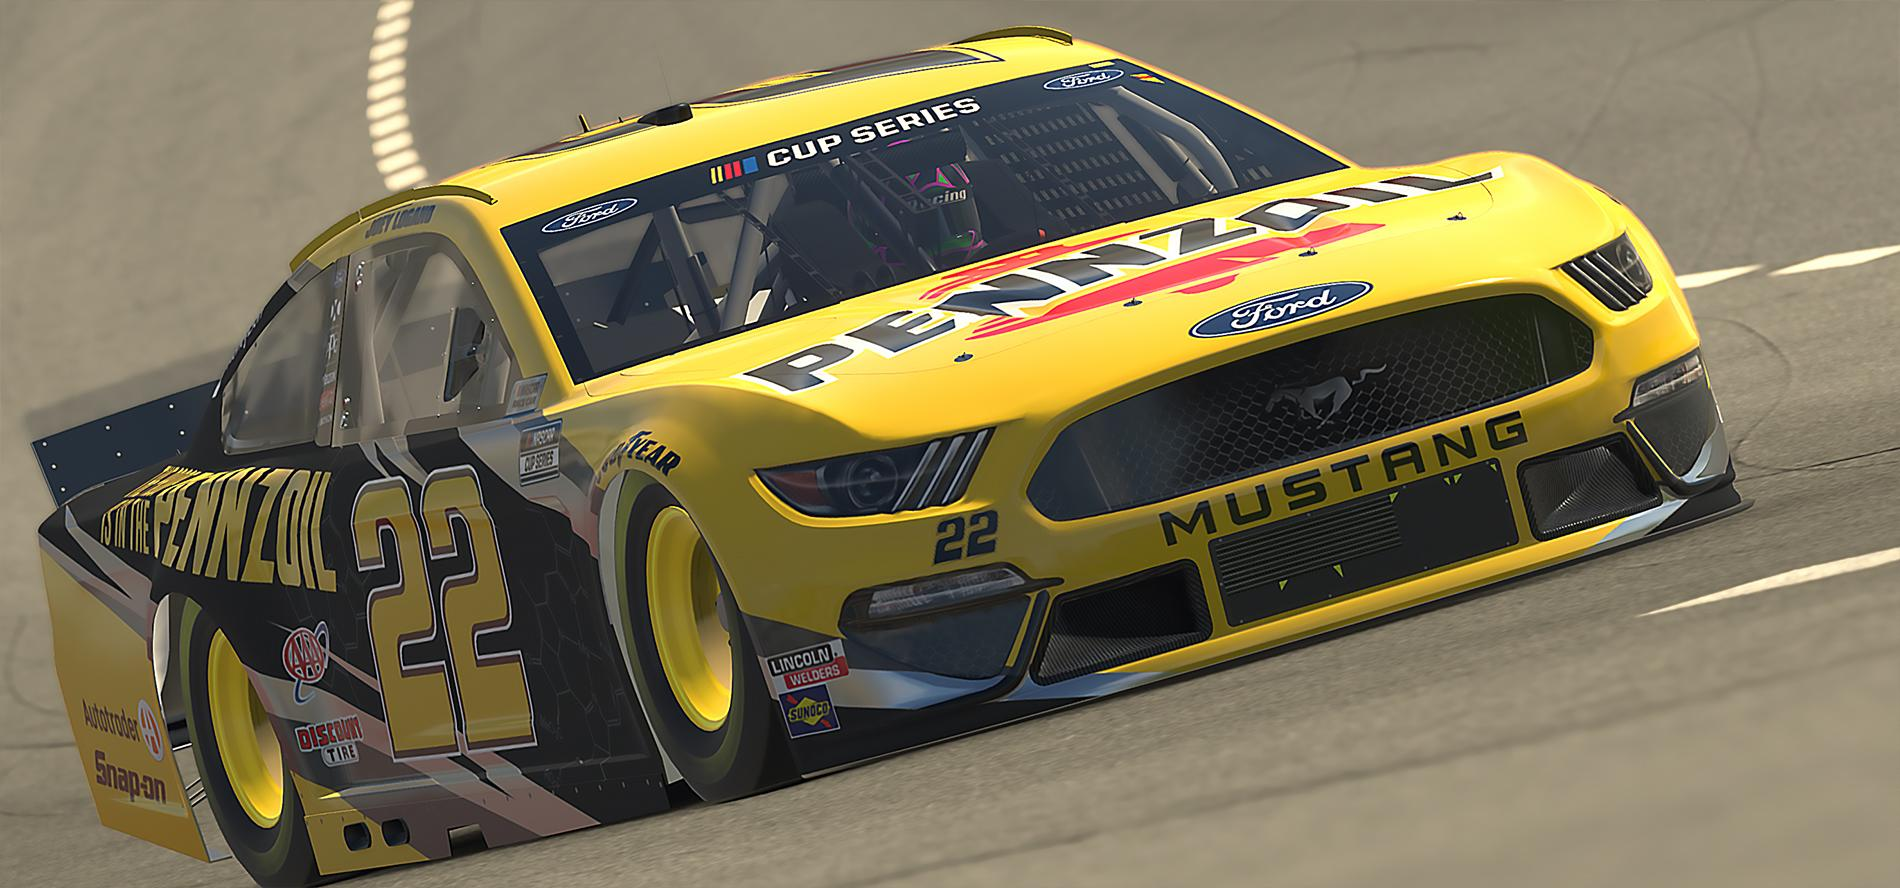 Preview of Fictional #22 Joey Logano Pennzoil Mustang by David Baker